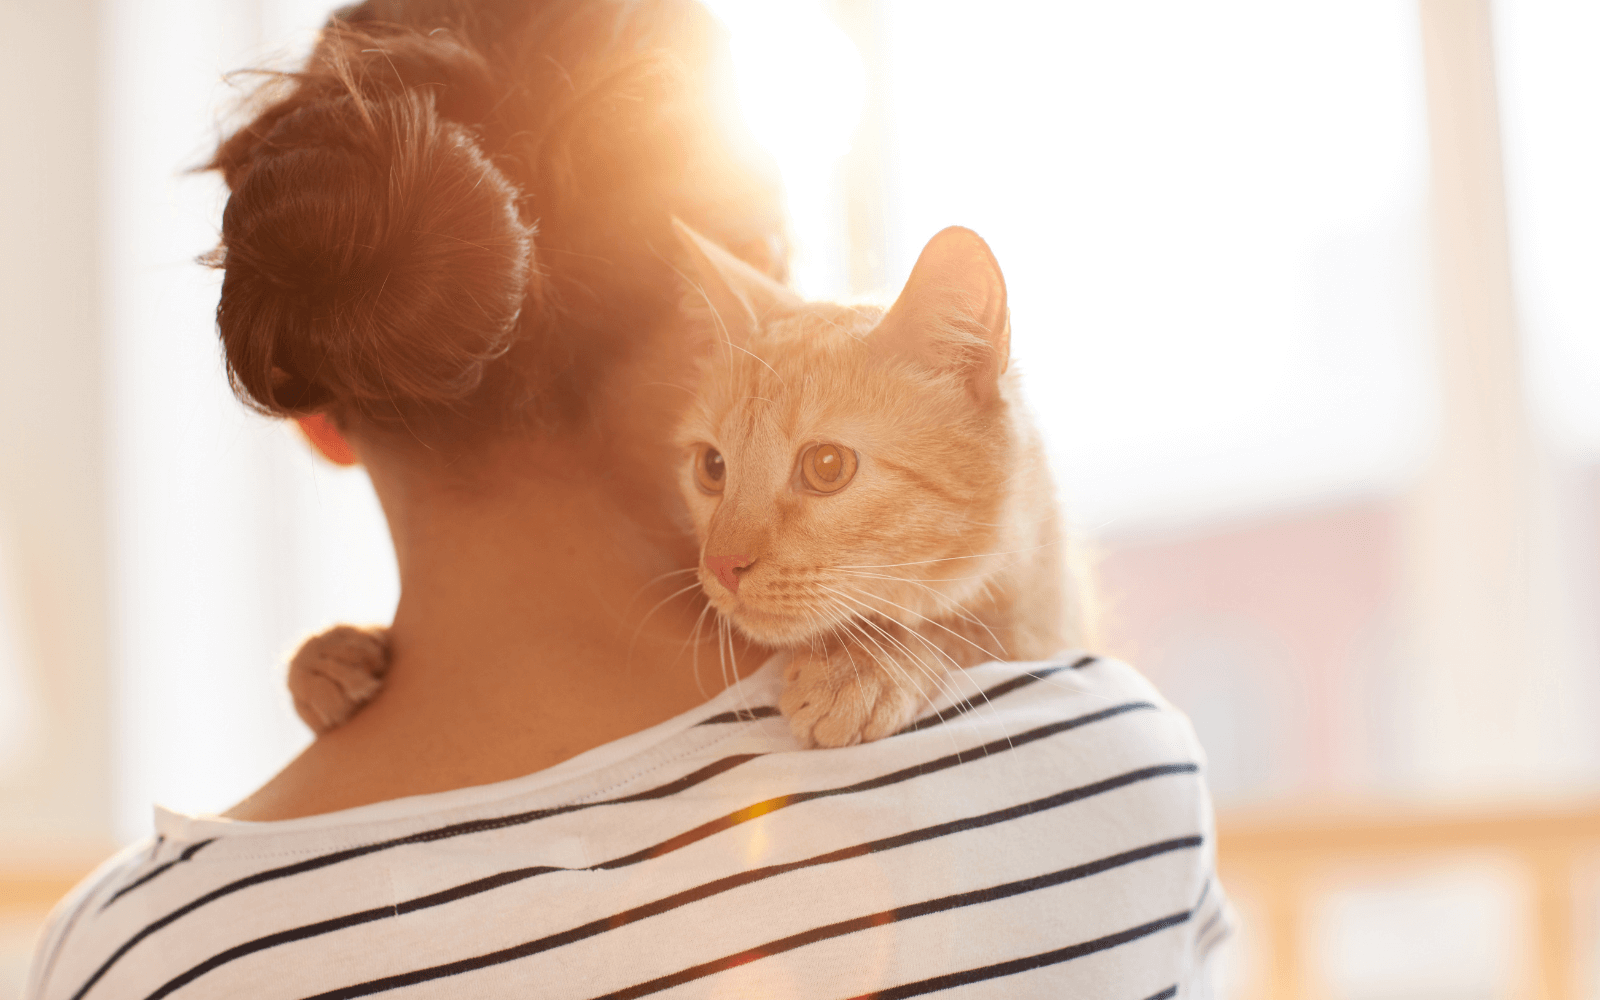 A woman in stripes hugs a ginger cat to say sorry